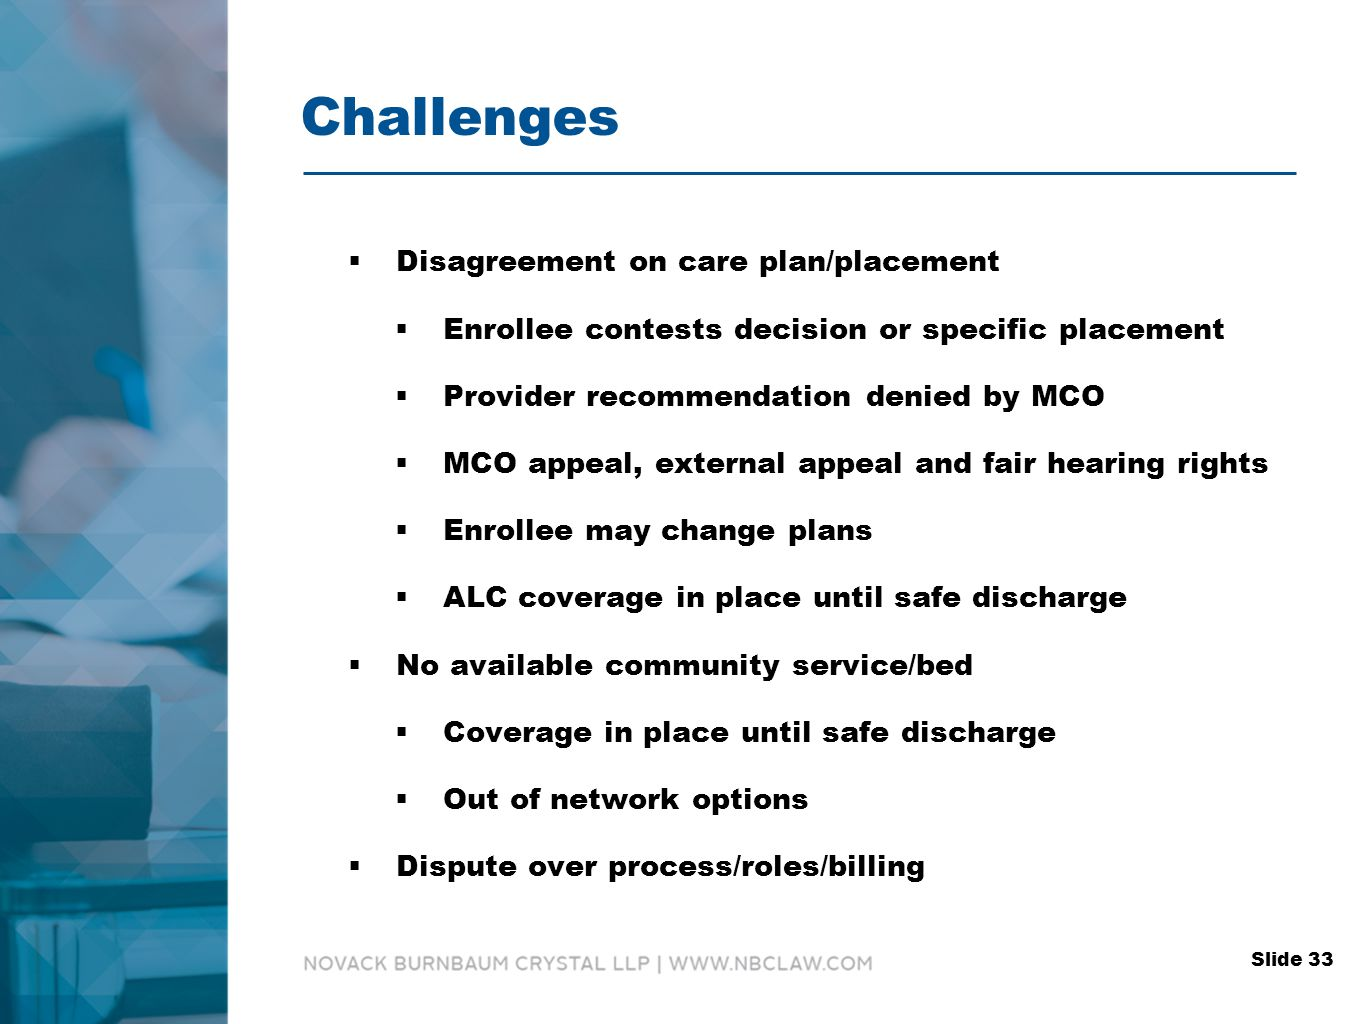 Challenges  Disagreement on care plan/placement  Enrollee contests decision or specific placement  Provider recommendation denied by MCO  MCO appeal, external appeal and fair hearing rights  Enrollee may change plans  ALC coverage in place until safe discharge  No available community service/bed  Coverage in place until safe discharge  Out of network options  Dispute over process/roles/billing Slide 33